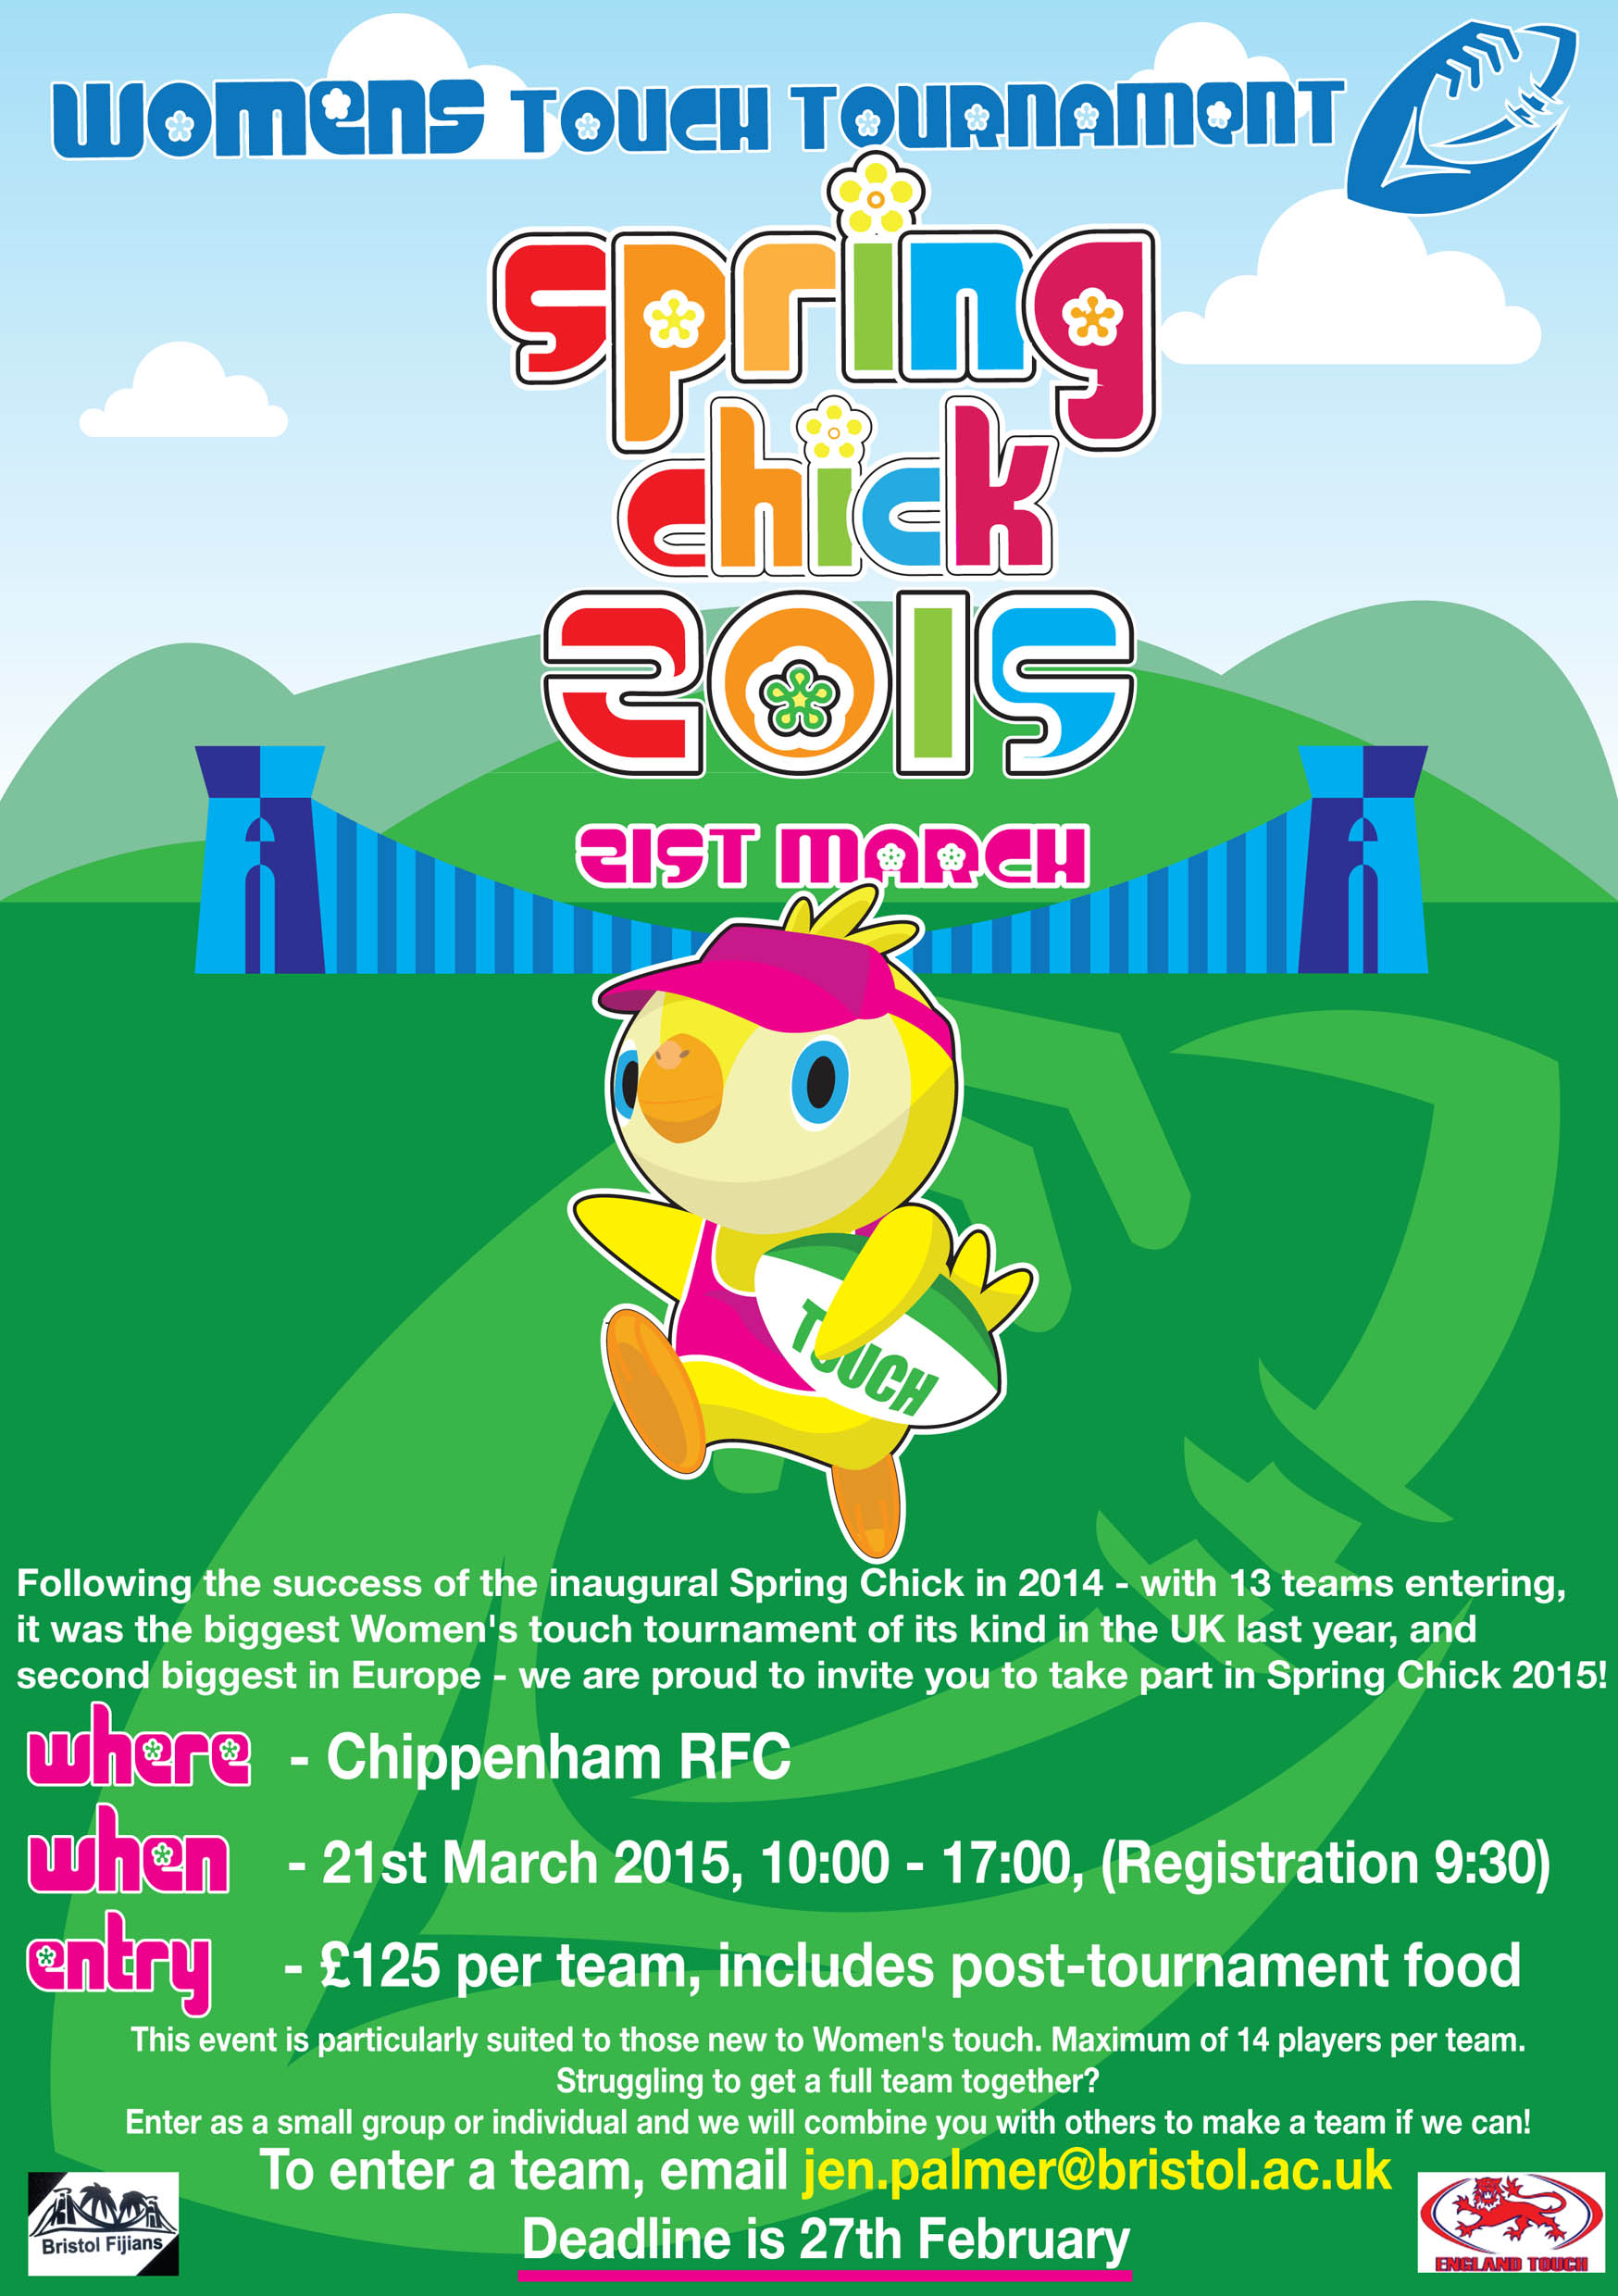 The Spring Chick 2015